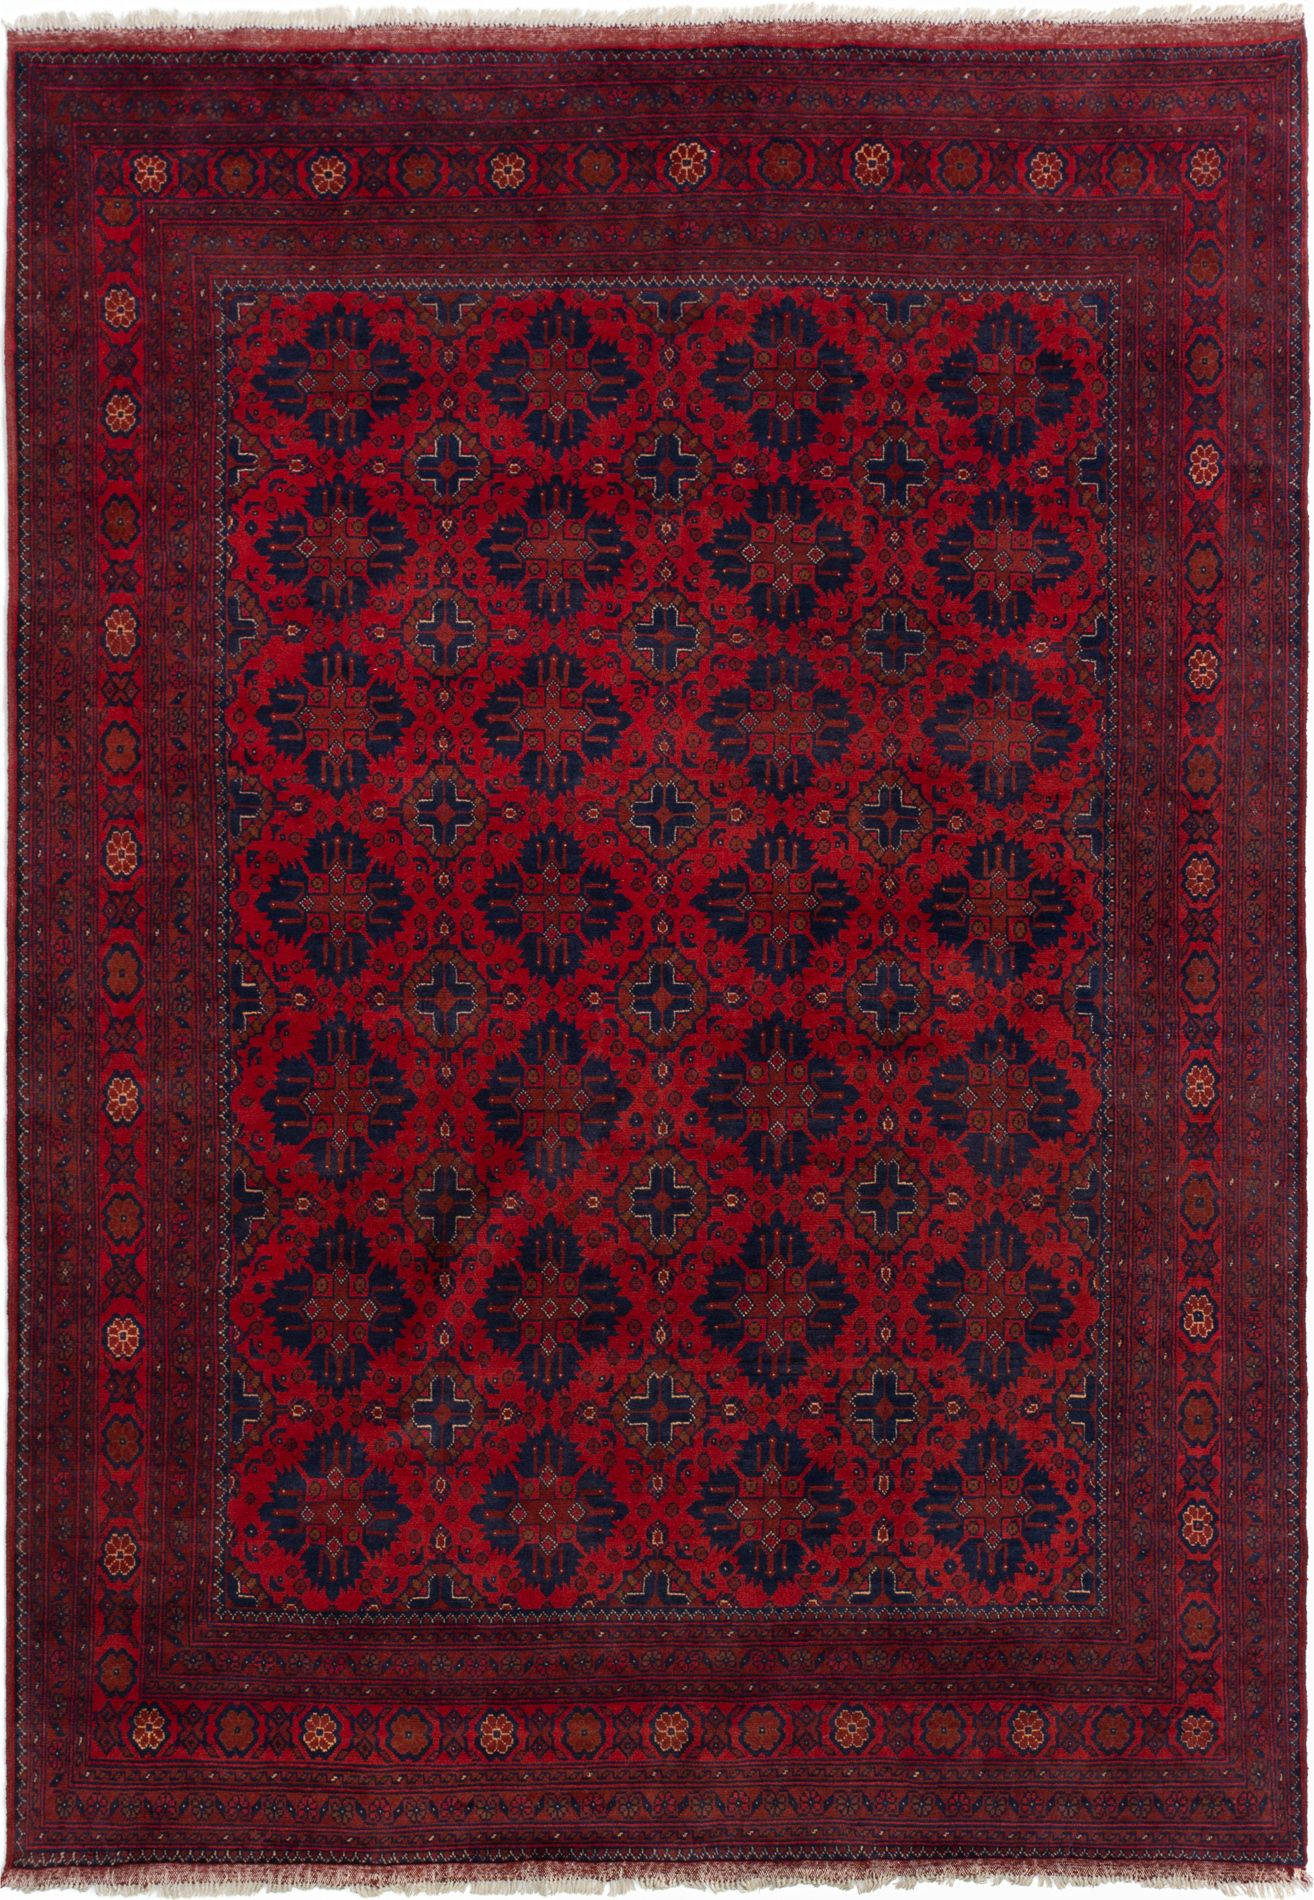 """Hand-knotted Finest Khal Mohammadi Dark Red Wool Rug 6'9"""" x 9'8"""" Size: 6'9"""" x 9'8"""""""